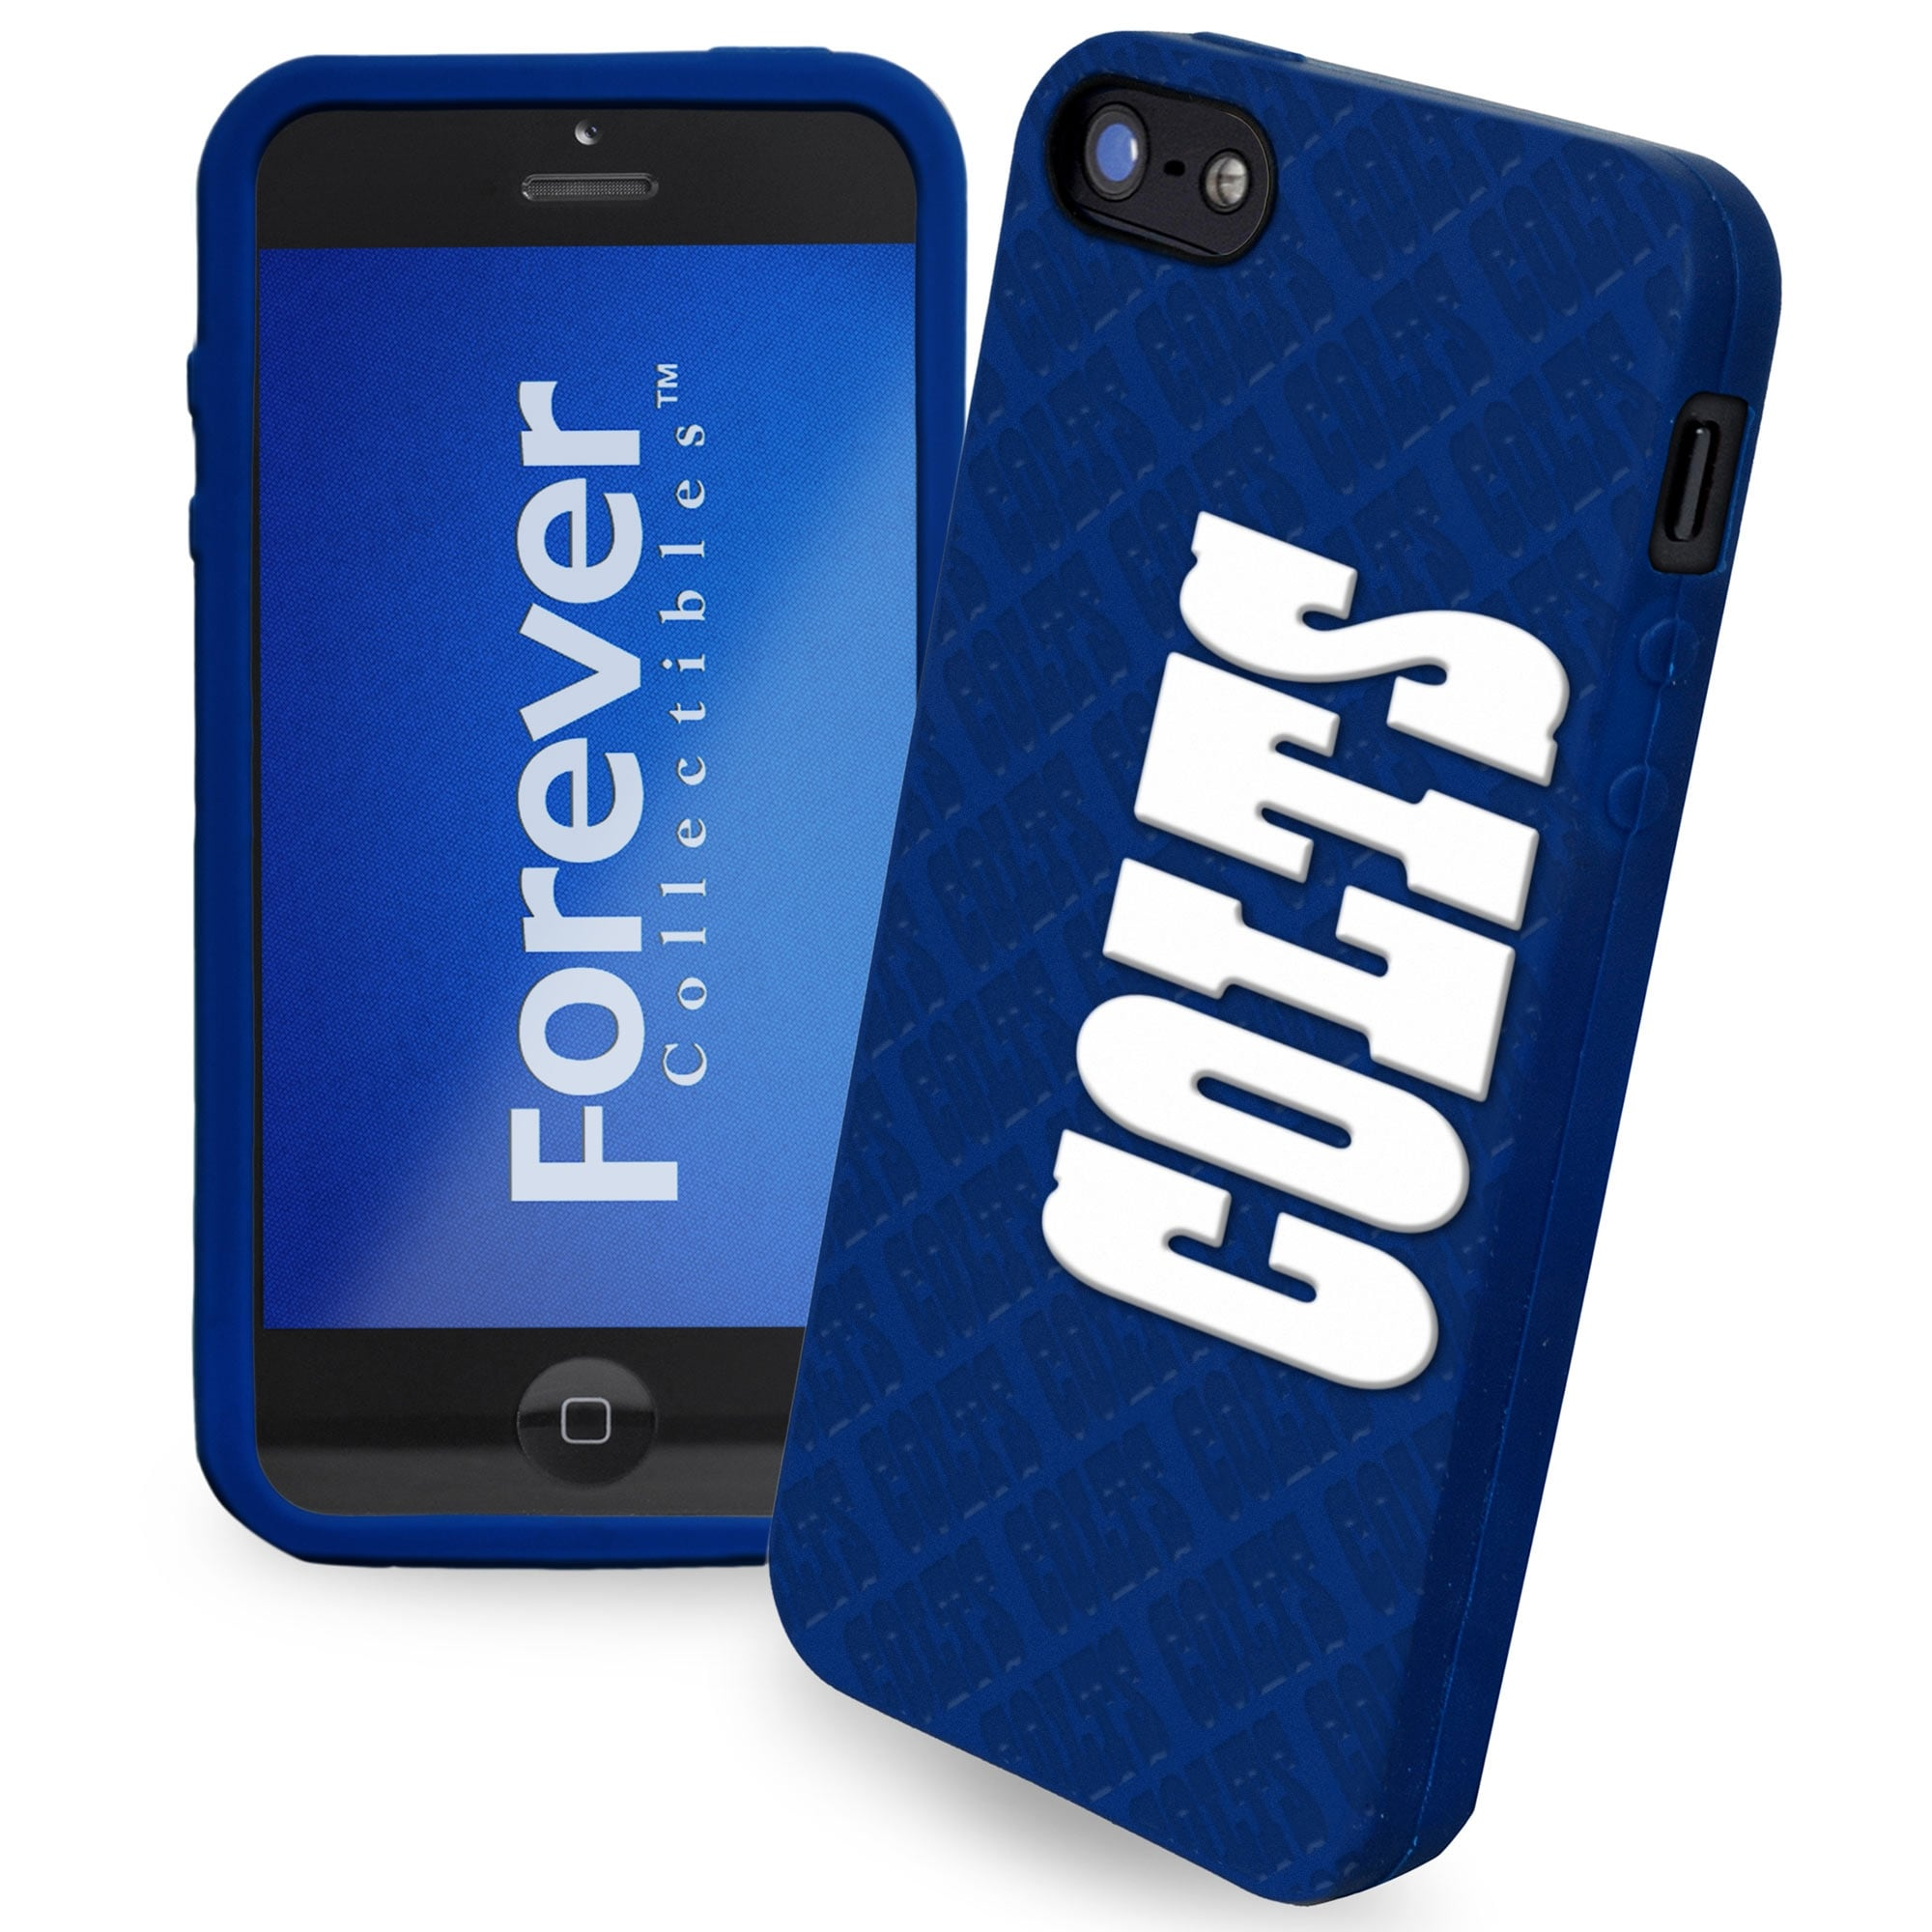 Indianapolis Colts Silicone iPhone 5 Cover - Royal Blue